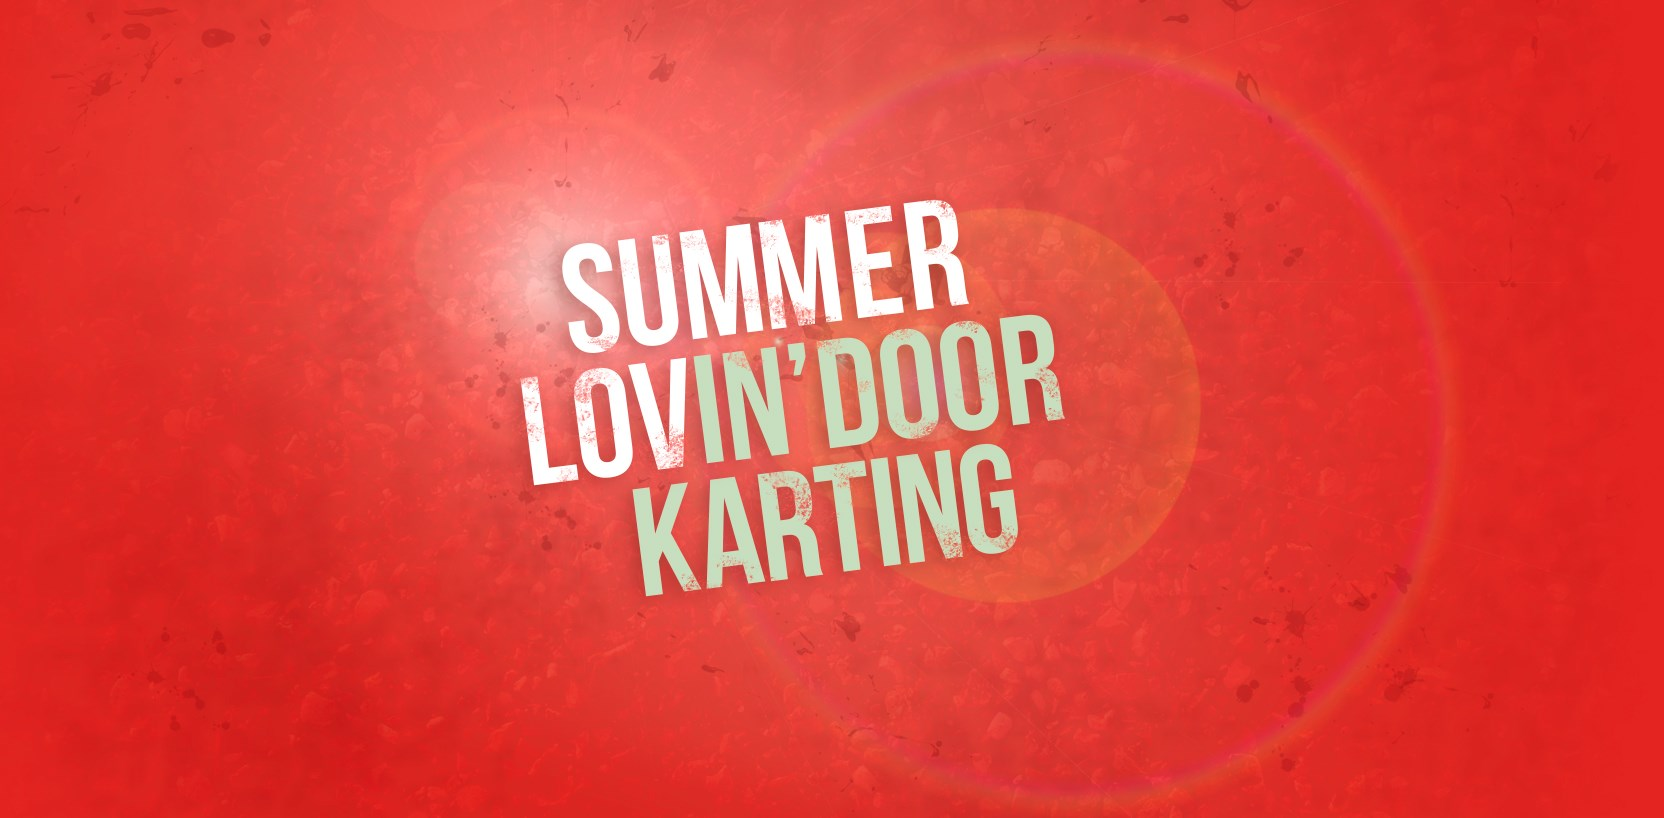 GO KARTING OFFERS - Summer Offers And Events